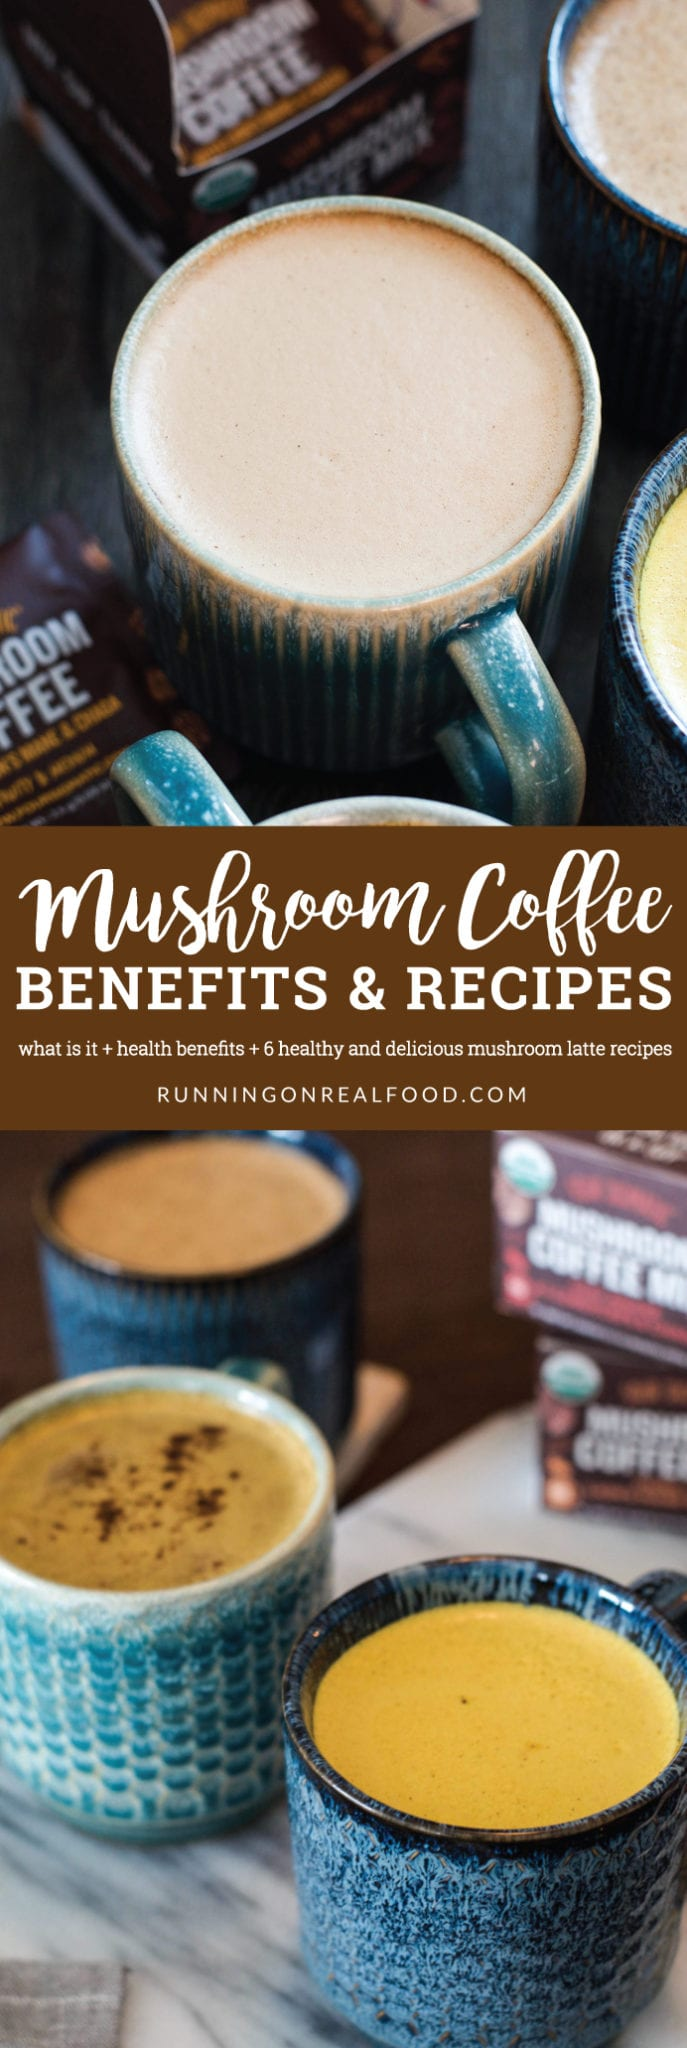 Learn all about mushroom coffee! How and when to drink it, what it is, the health benefits and how to use it to create delicious vegan, mushroom coffee latte recipes! These nourishing drinks are frothy, foamy and creamy. 6 healthy recipes to try.